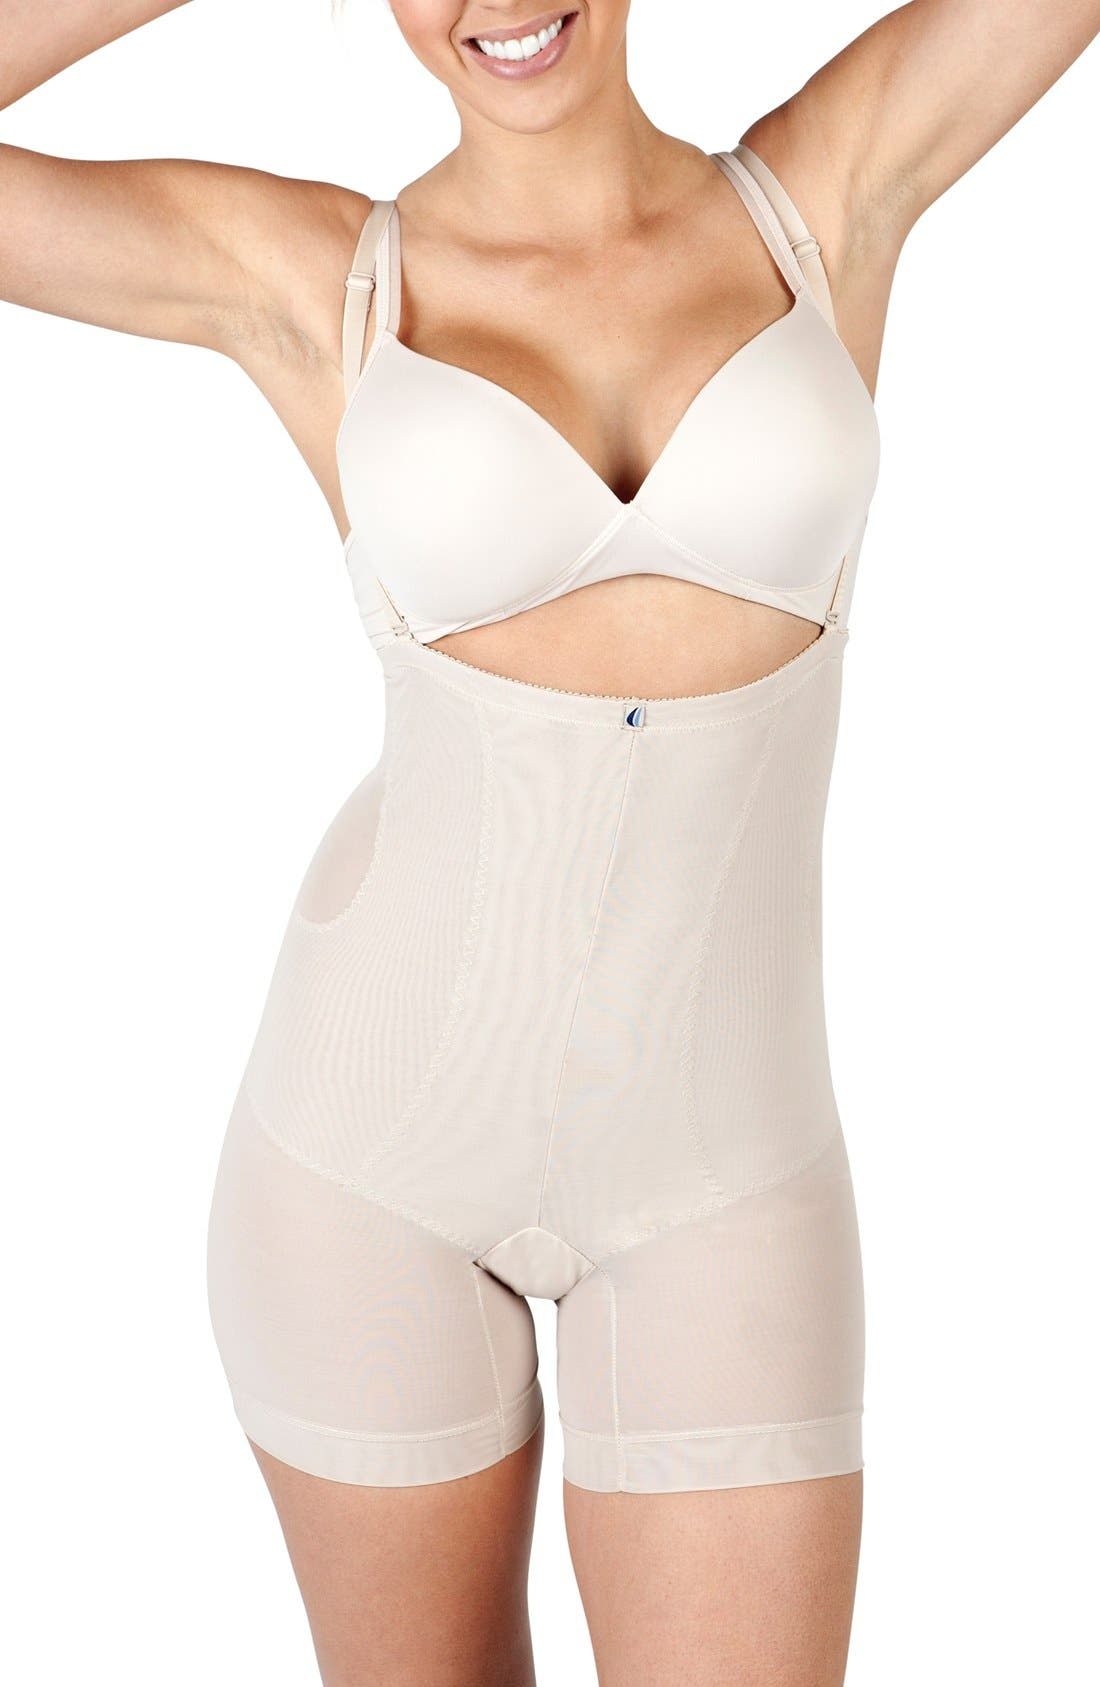 Main Image - Body After Baby 'Angelica' Post-Pregnancy Recovery Garment